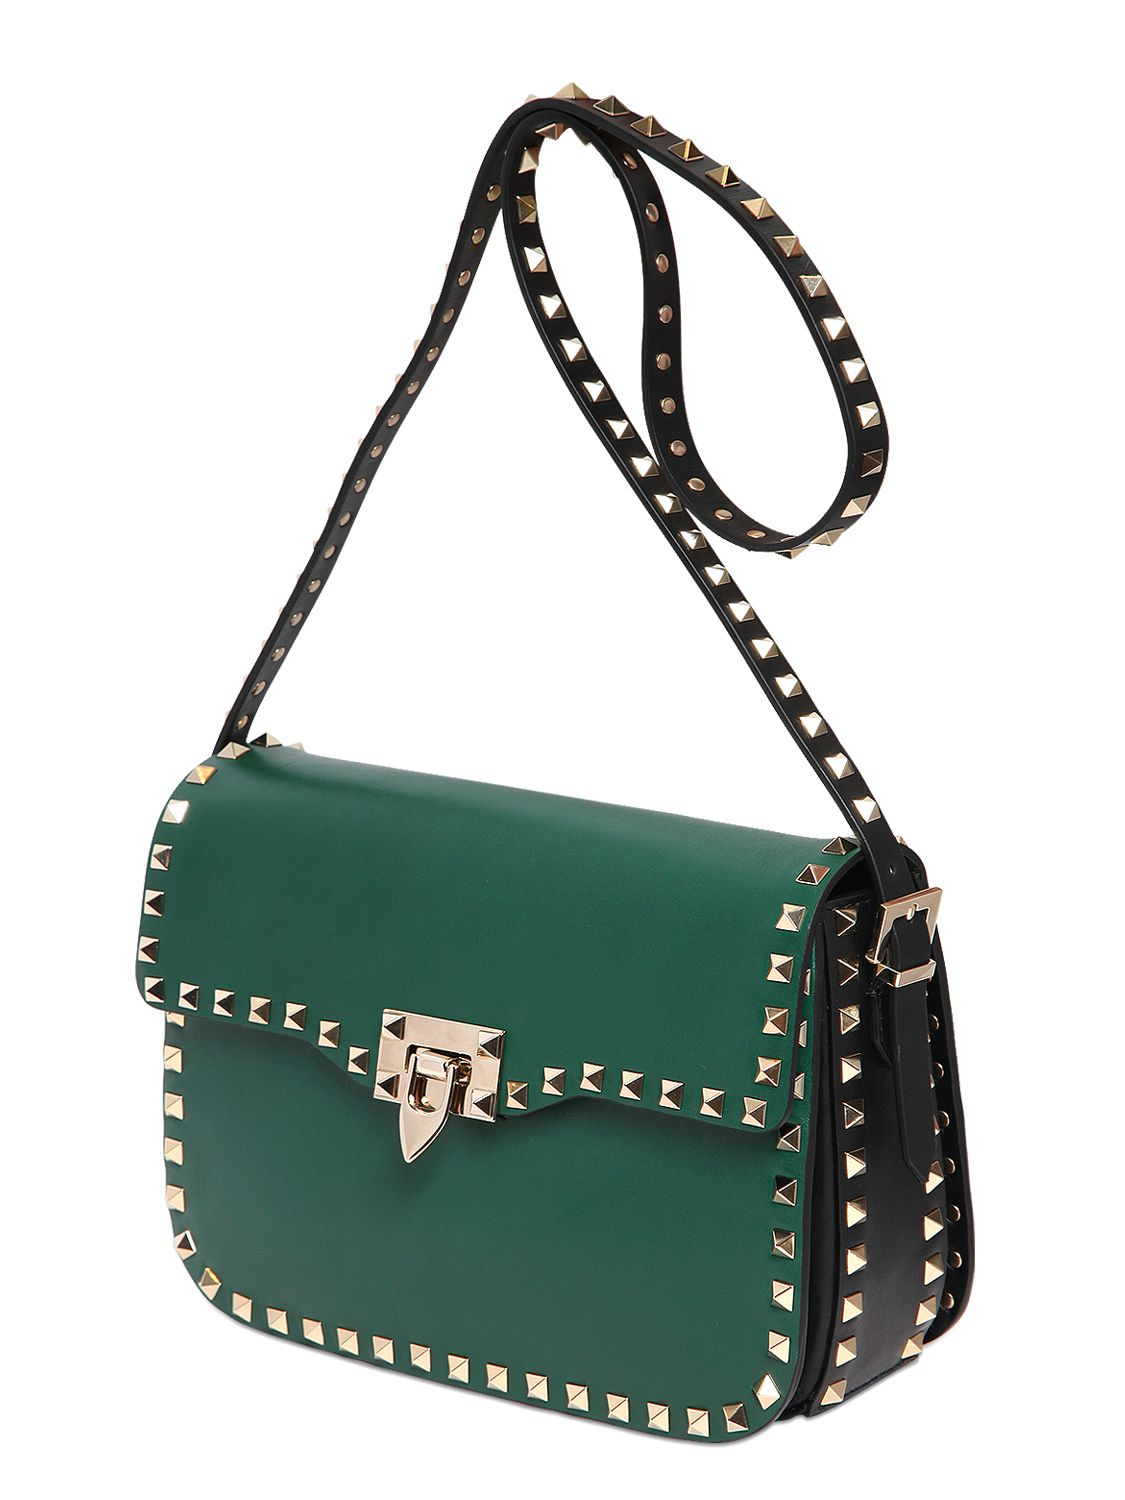 Valentino Rockstud Two Tone Leather Shoulder Bag in Green | Lyst